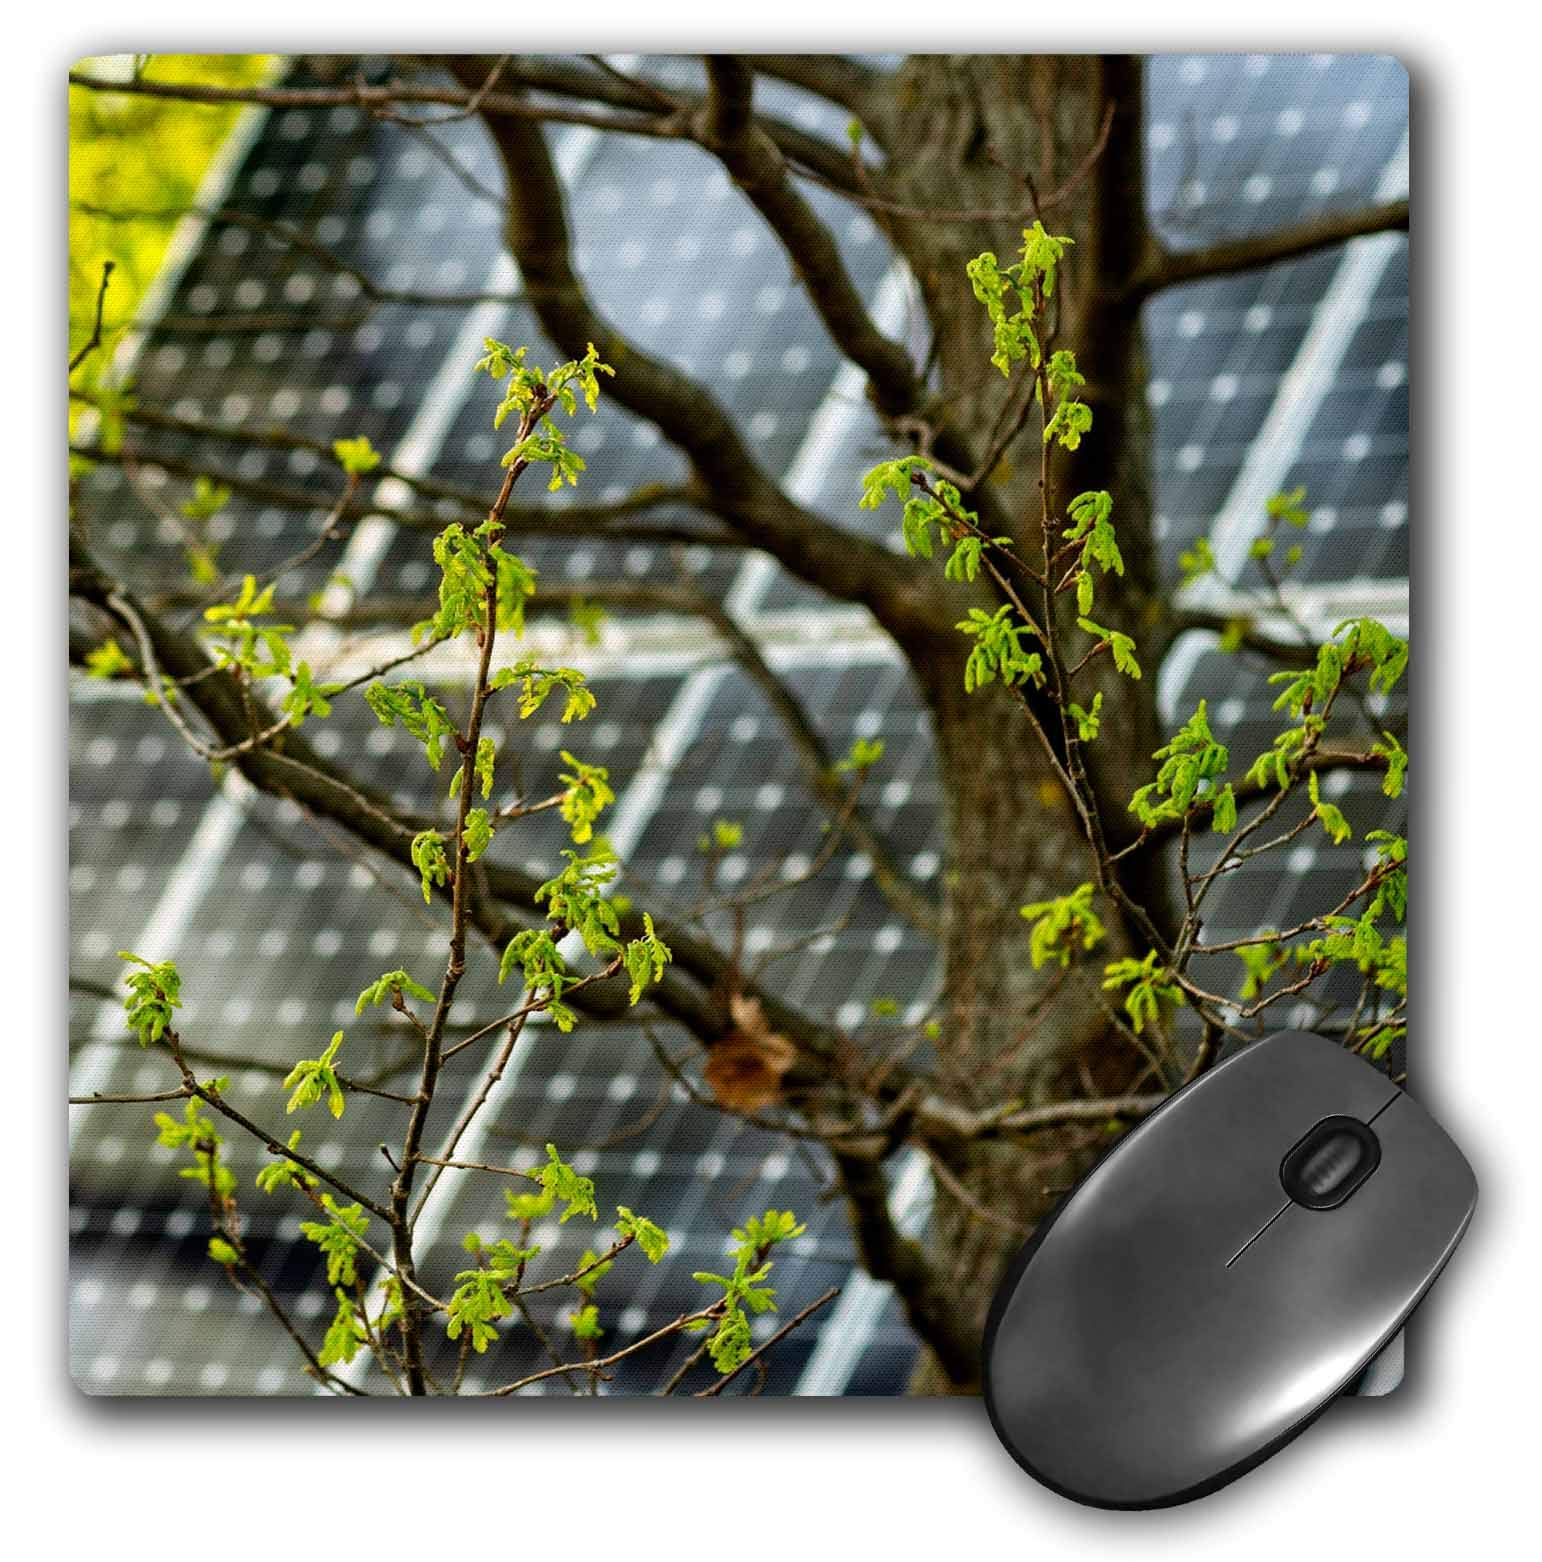 3dRose Alexis Photography - Objects - Oak Tree with Fresh Leaves, Solar Power Panel in The Background - Mousepad (mp_290827_1)